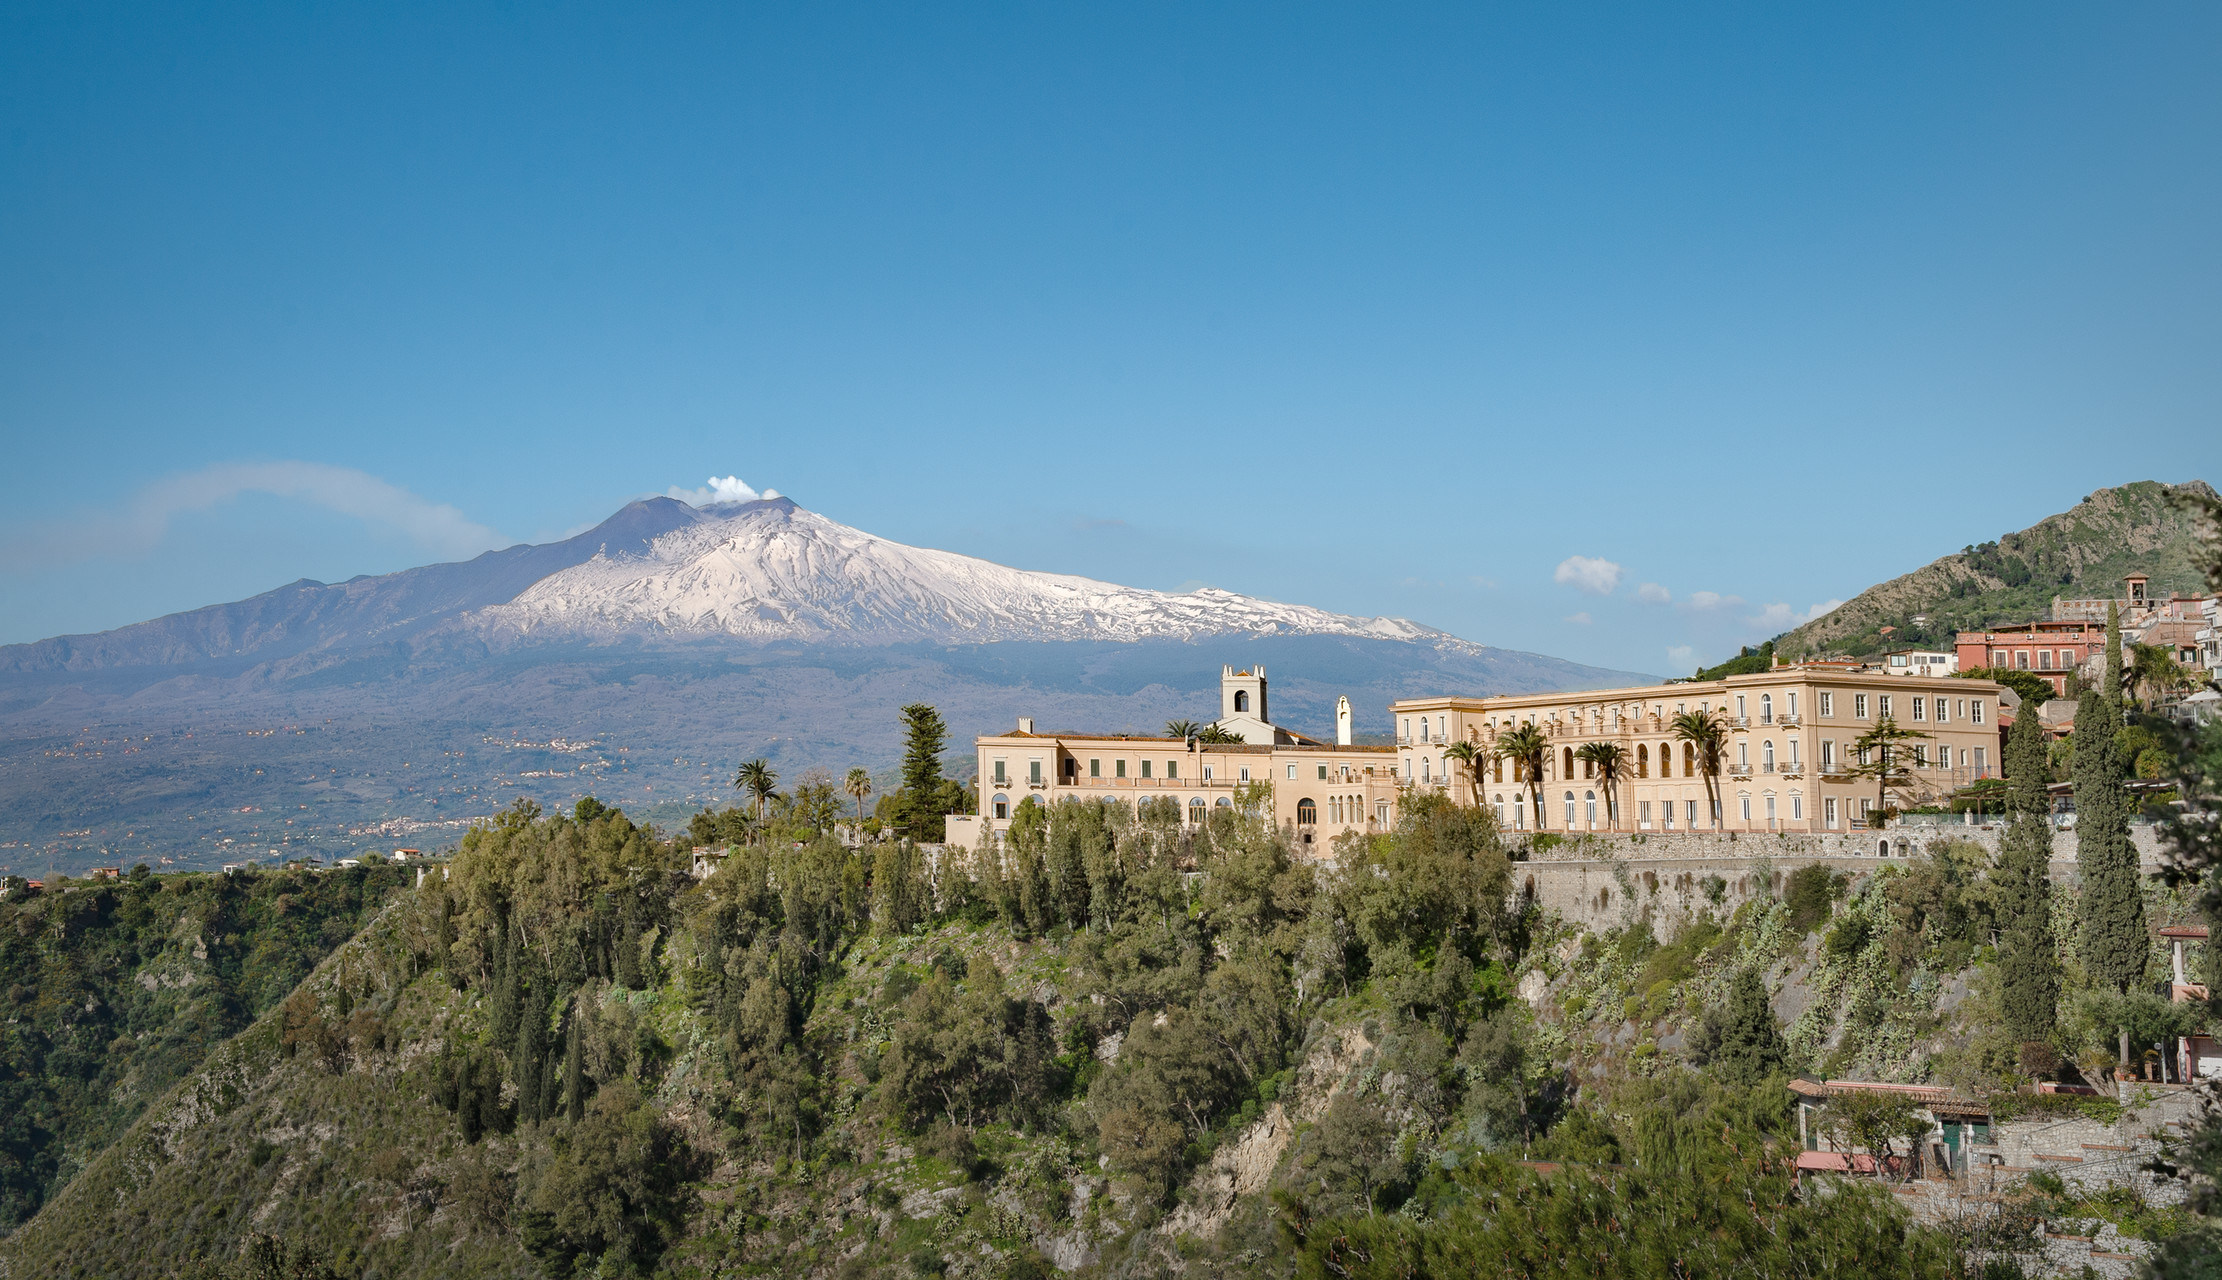 The now open San Domenico Palace, Taormina, A Four Seasons Hotel welcomes holidaymakers back to Sicily.